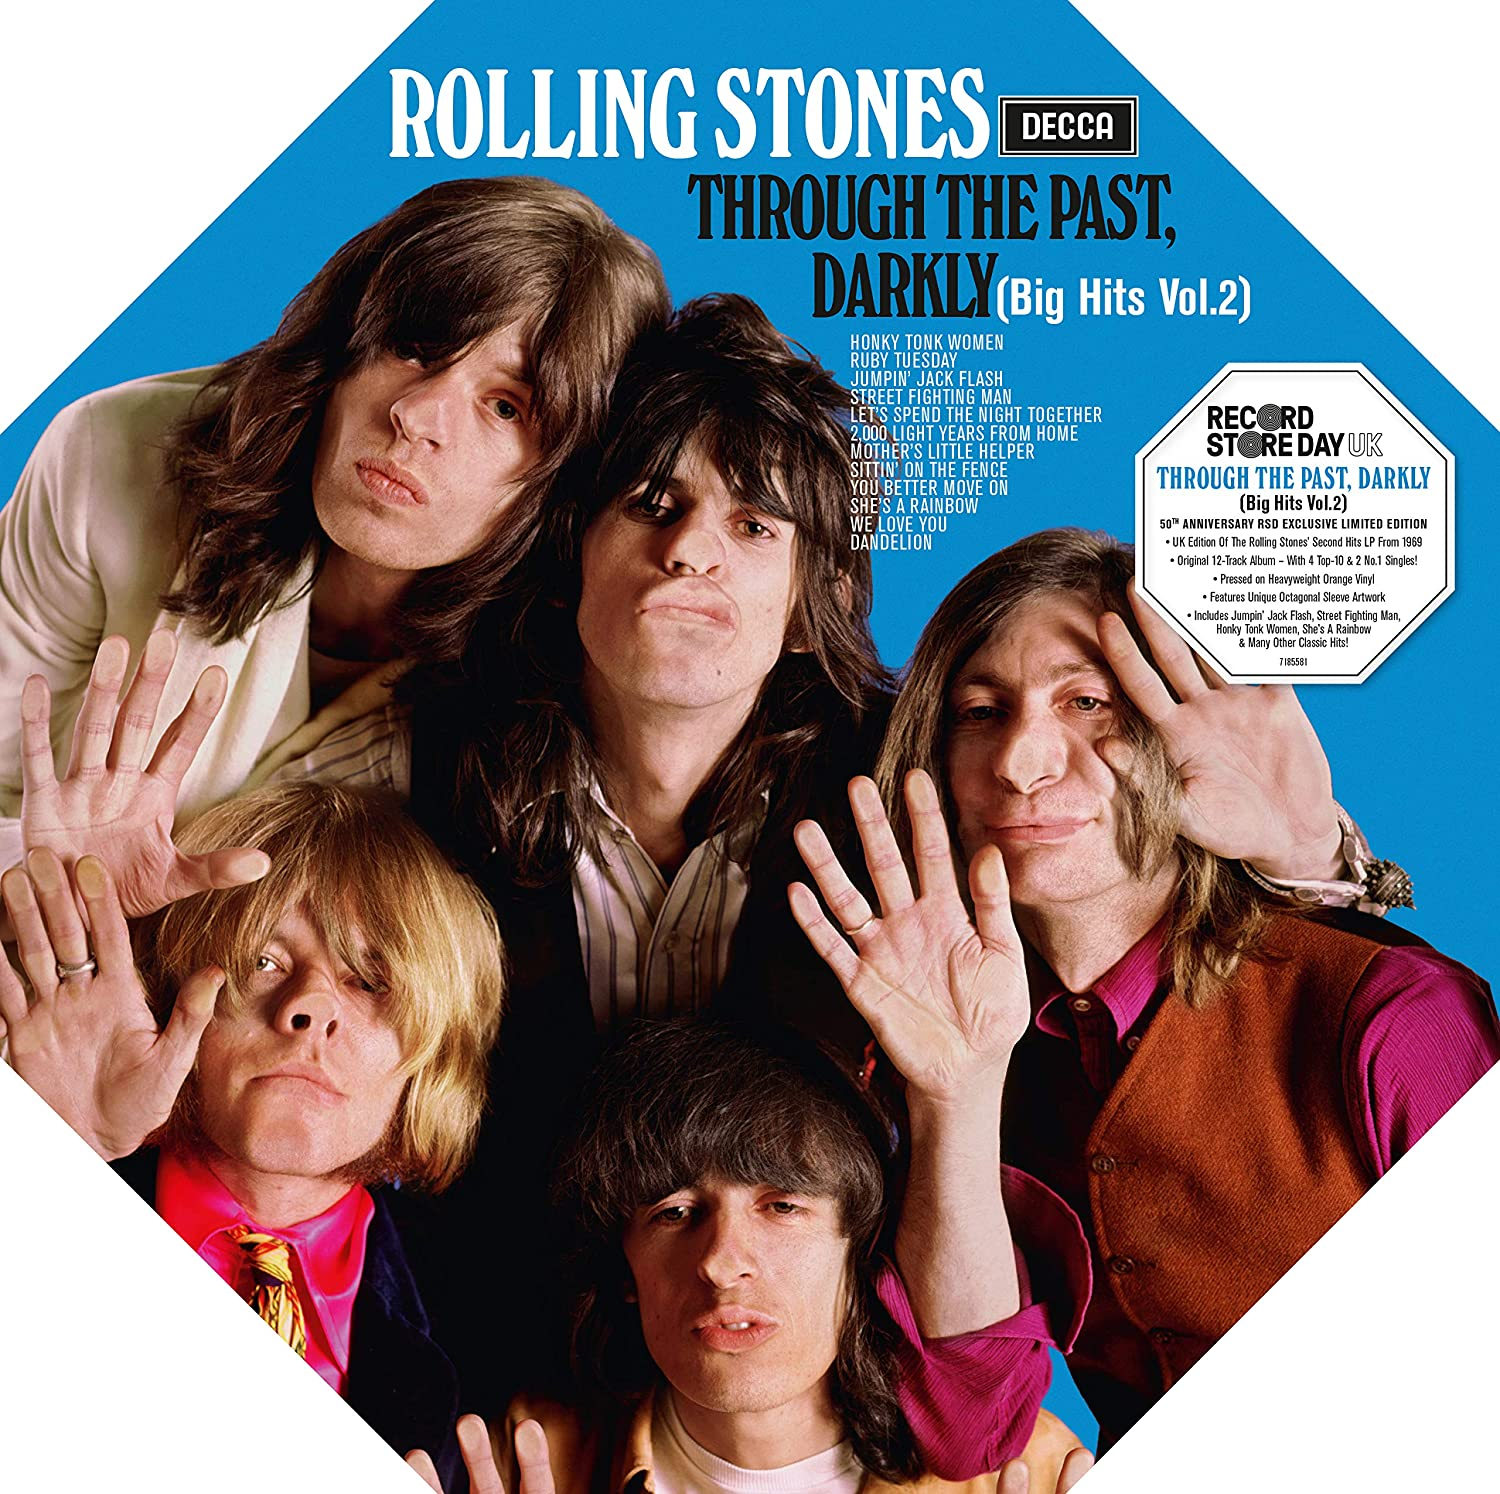 The Rolling Stones - Through The Past, Darkly (Big Hits Vol. 2)180gm Orange Vinyl